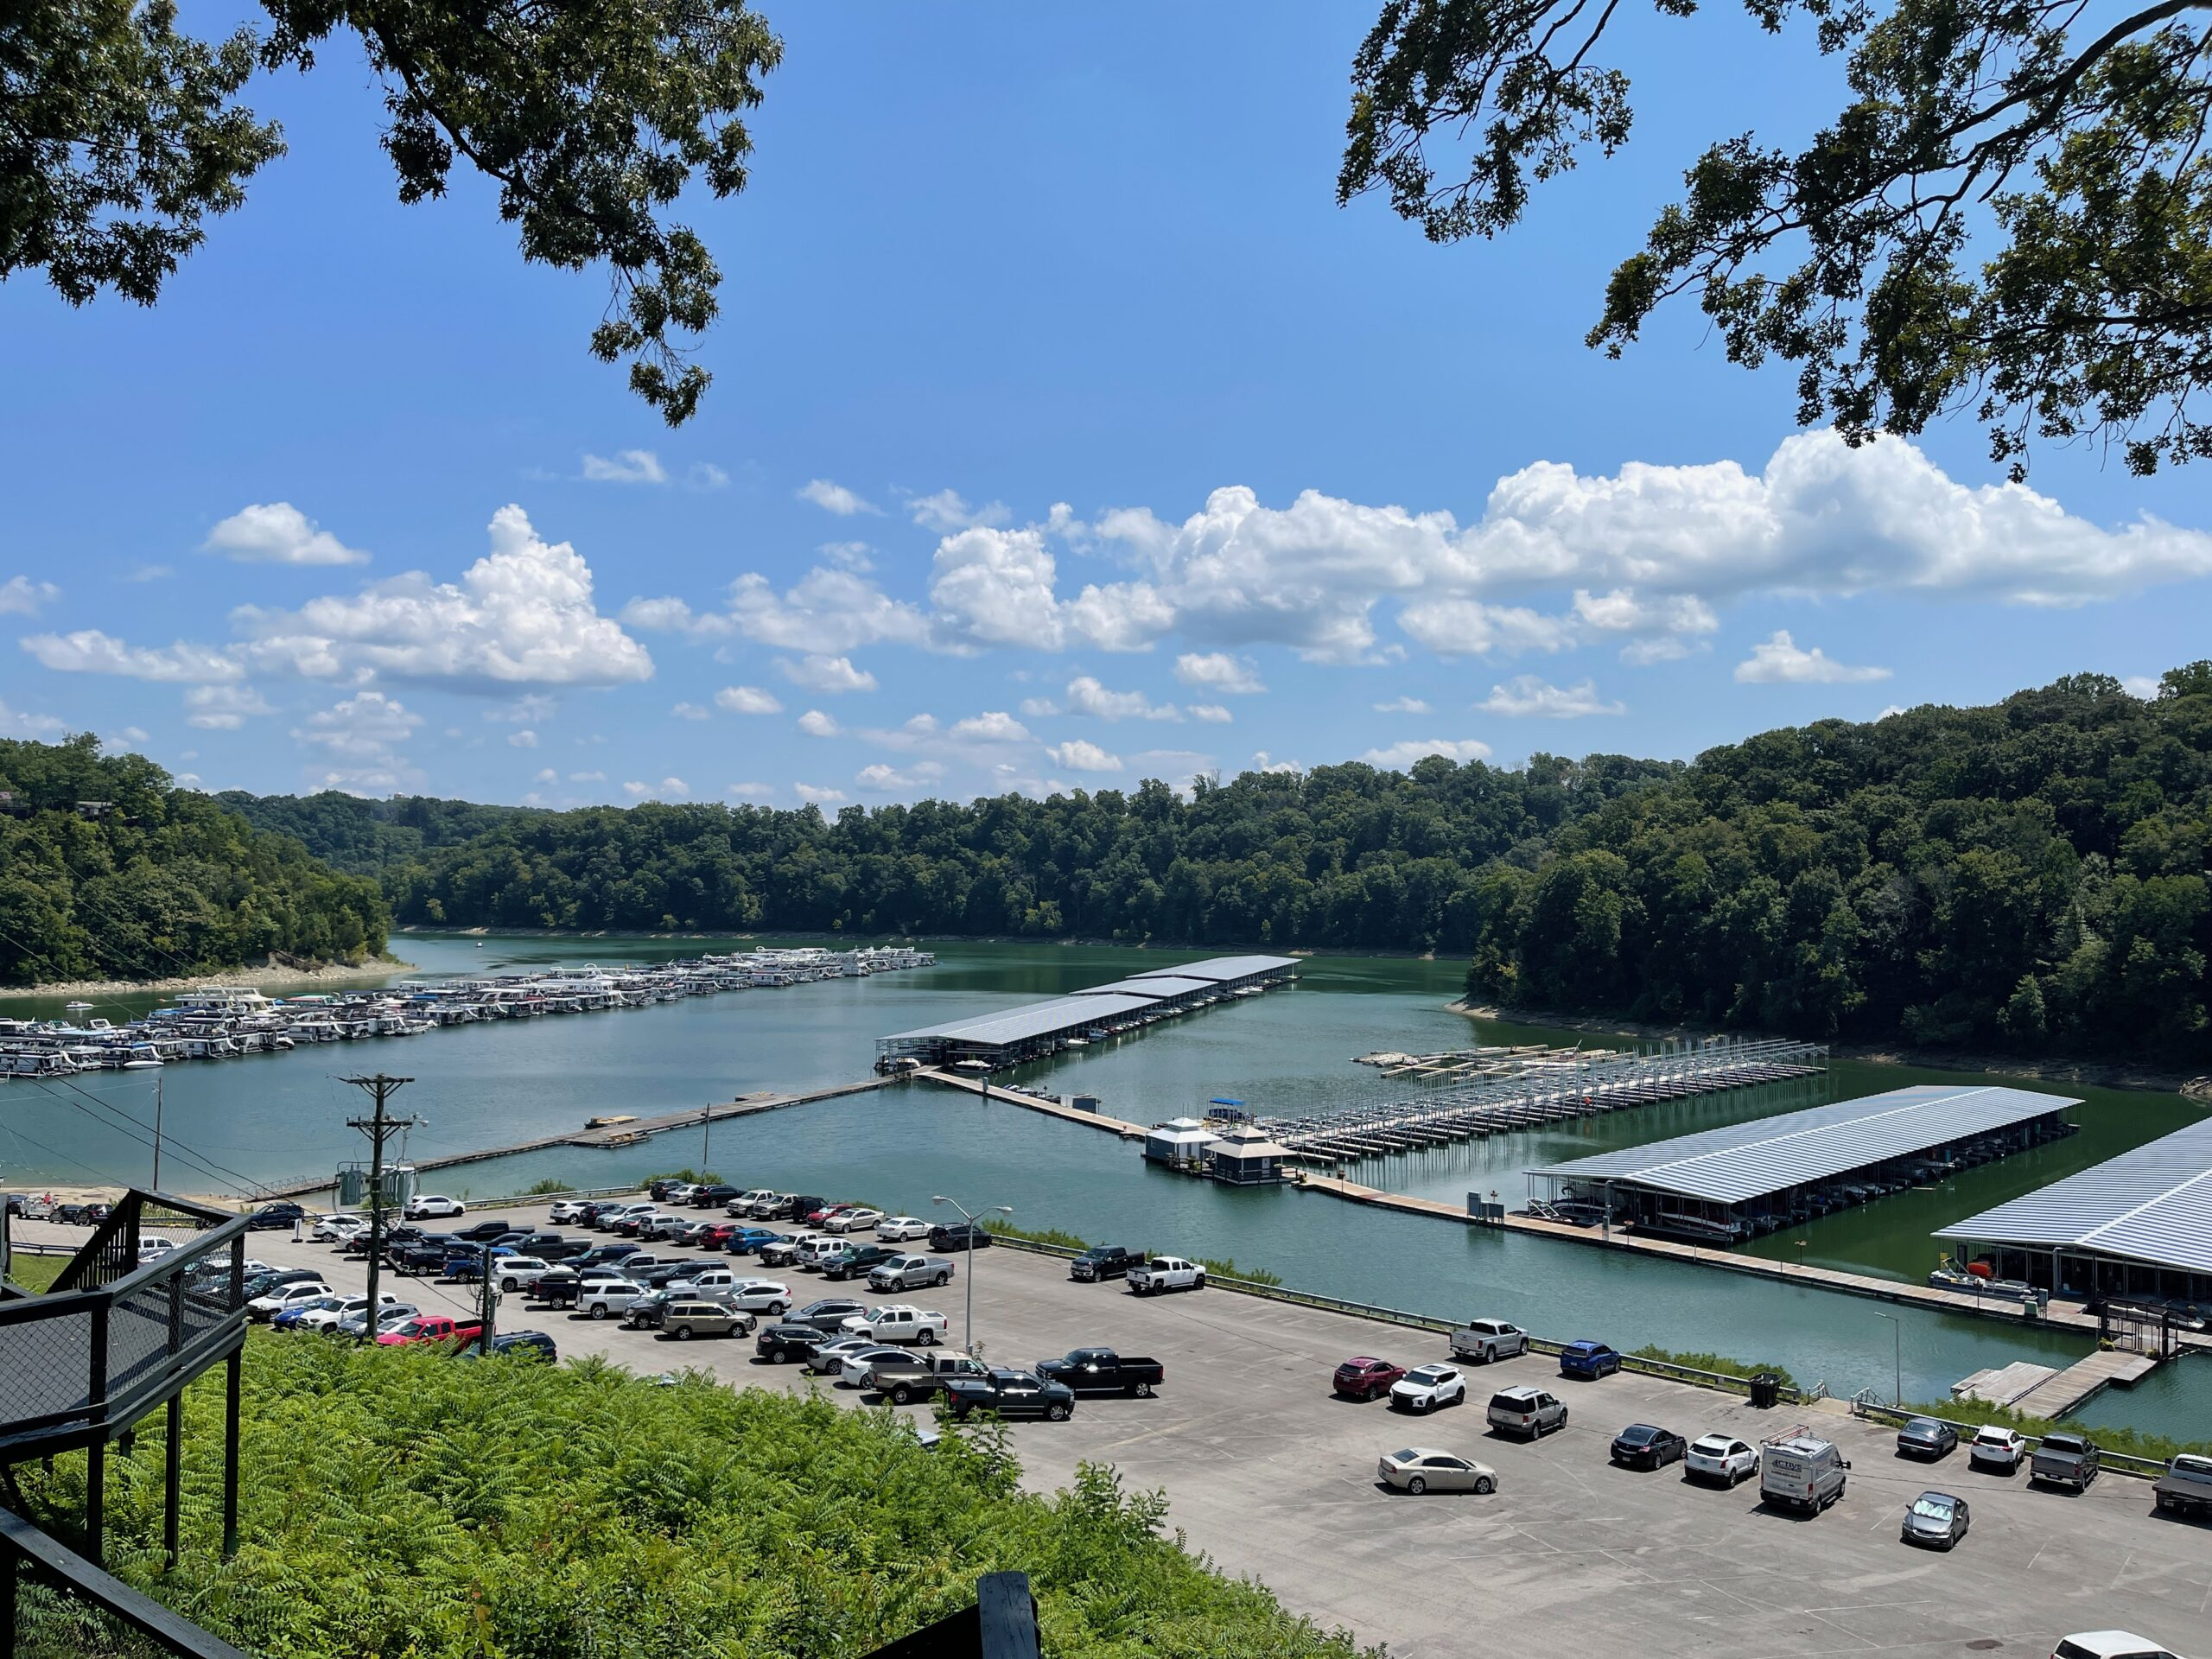 small towns in kentucky - Lee's Ford Marina